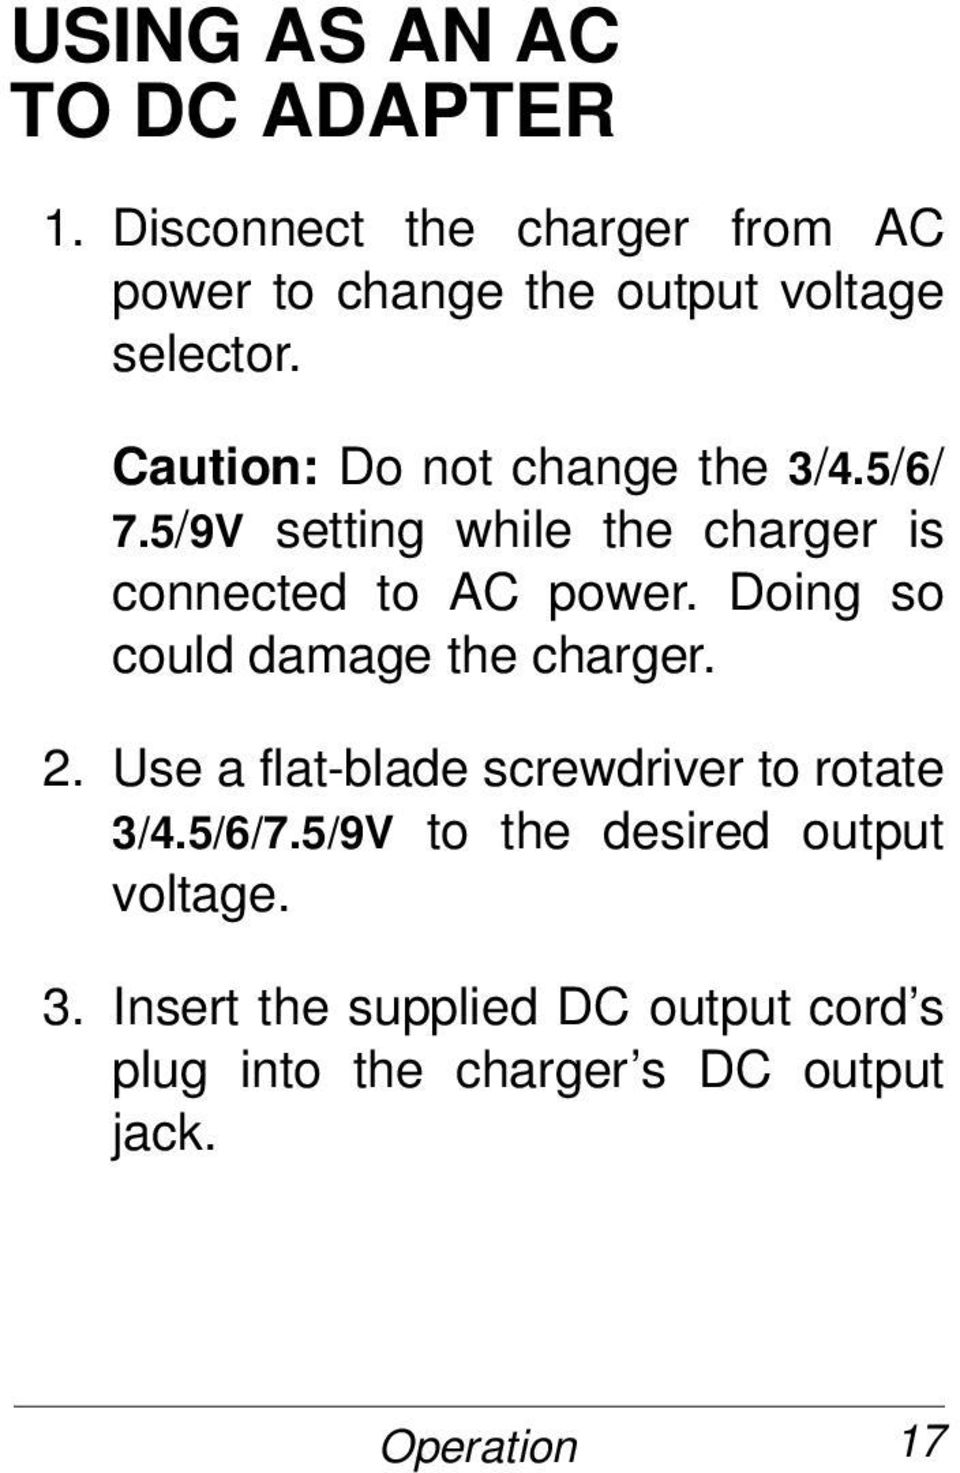 Caution: Do not change the 3/4.5/6/ 7.5/9V setting while the charger is connected to AC power.